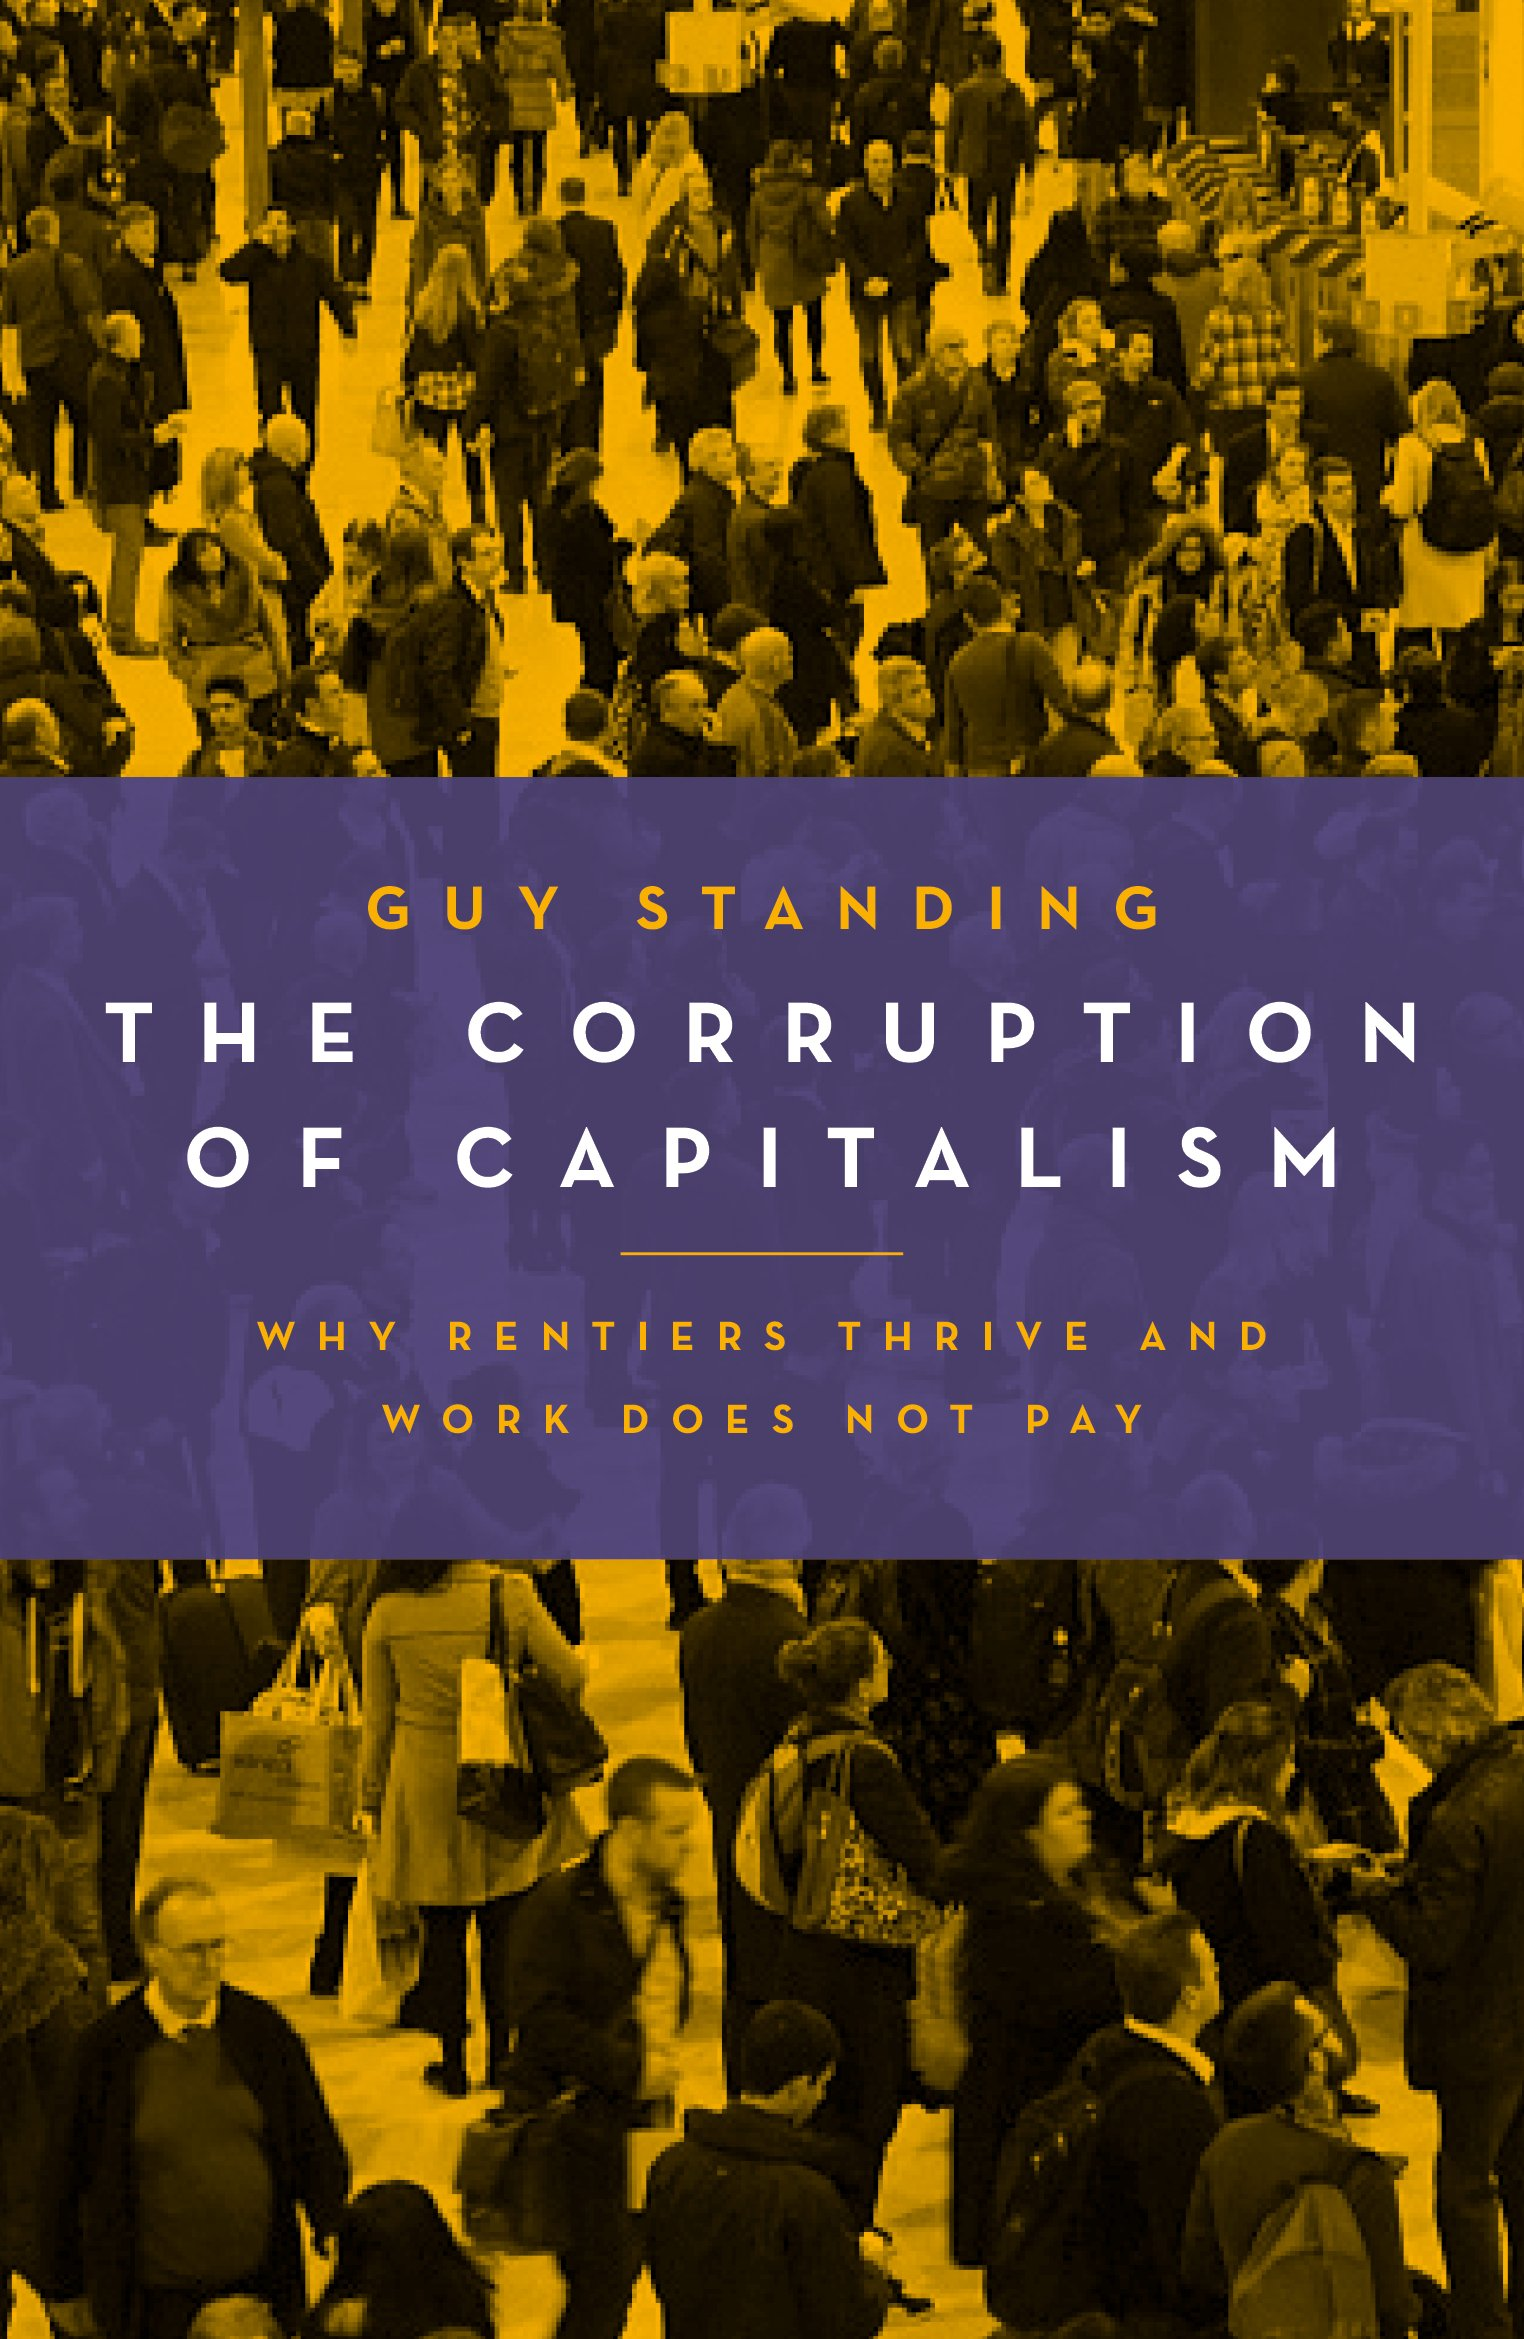 Download The Corruption Of Capitalism: Why Rentiers Thrive And Work Does Not Pay 